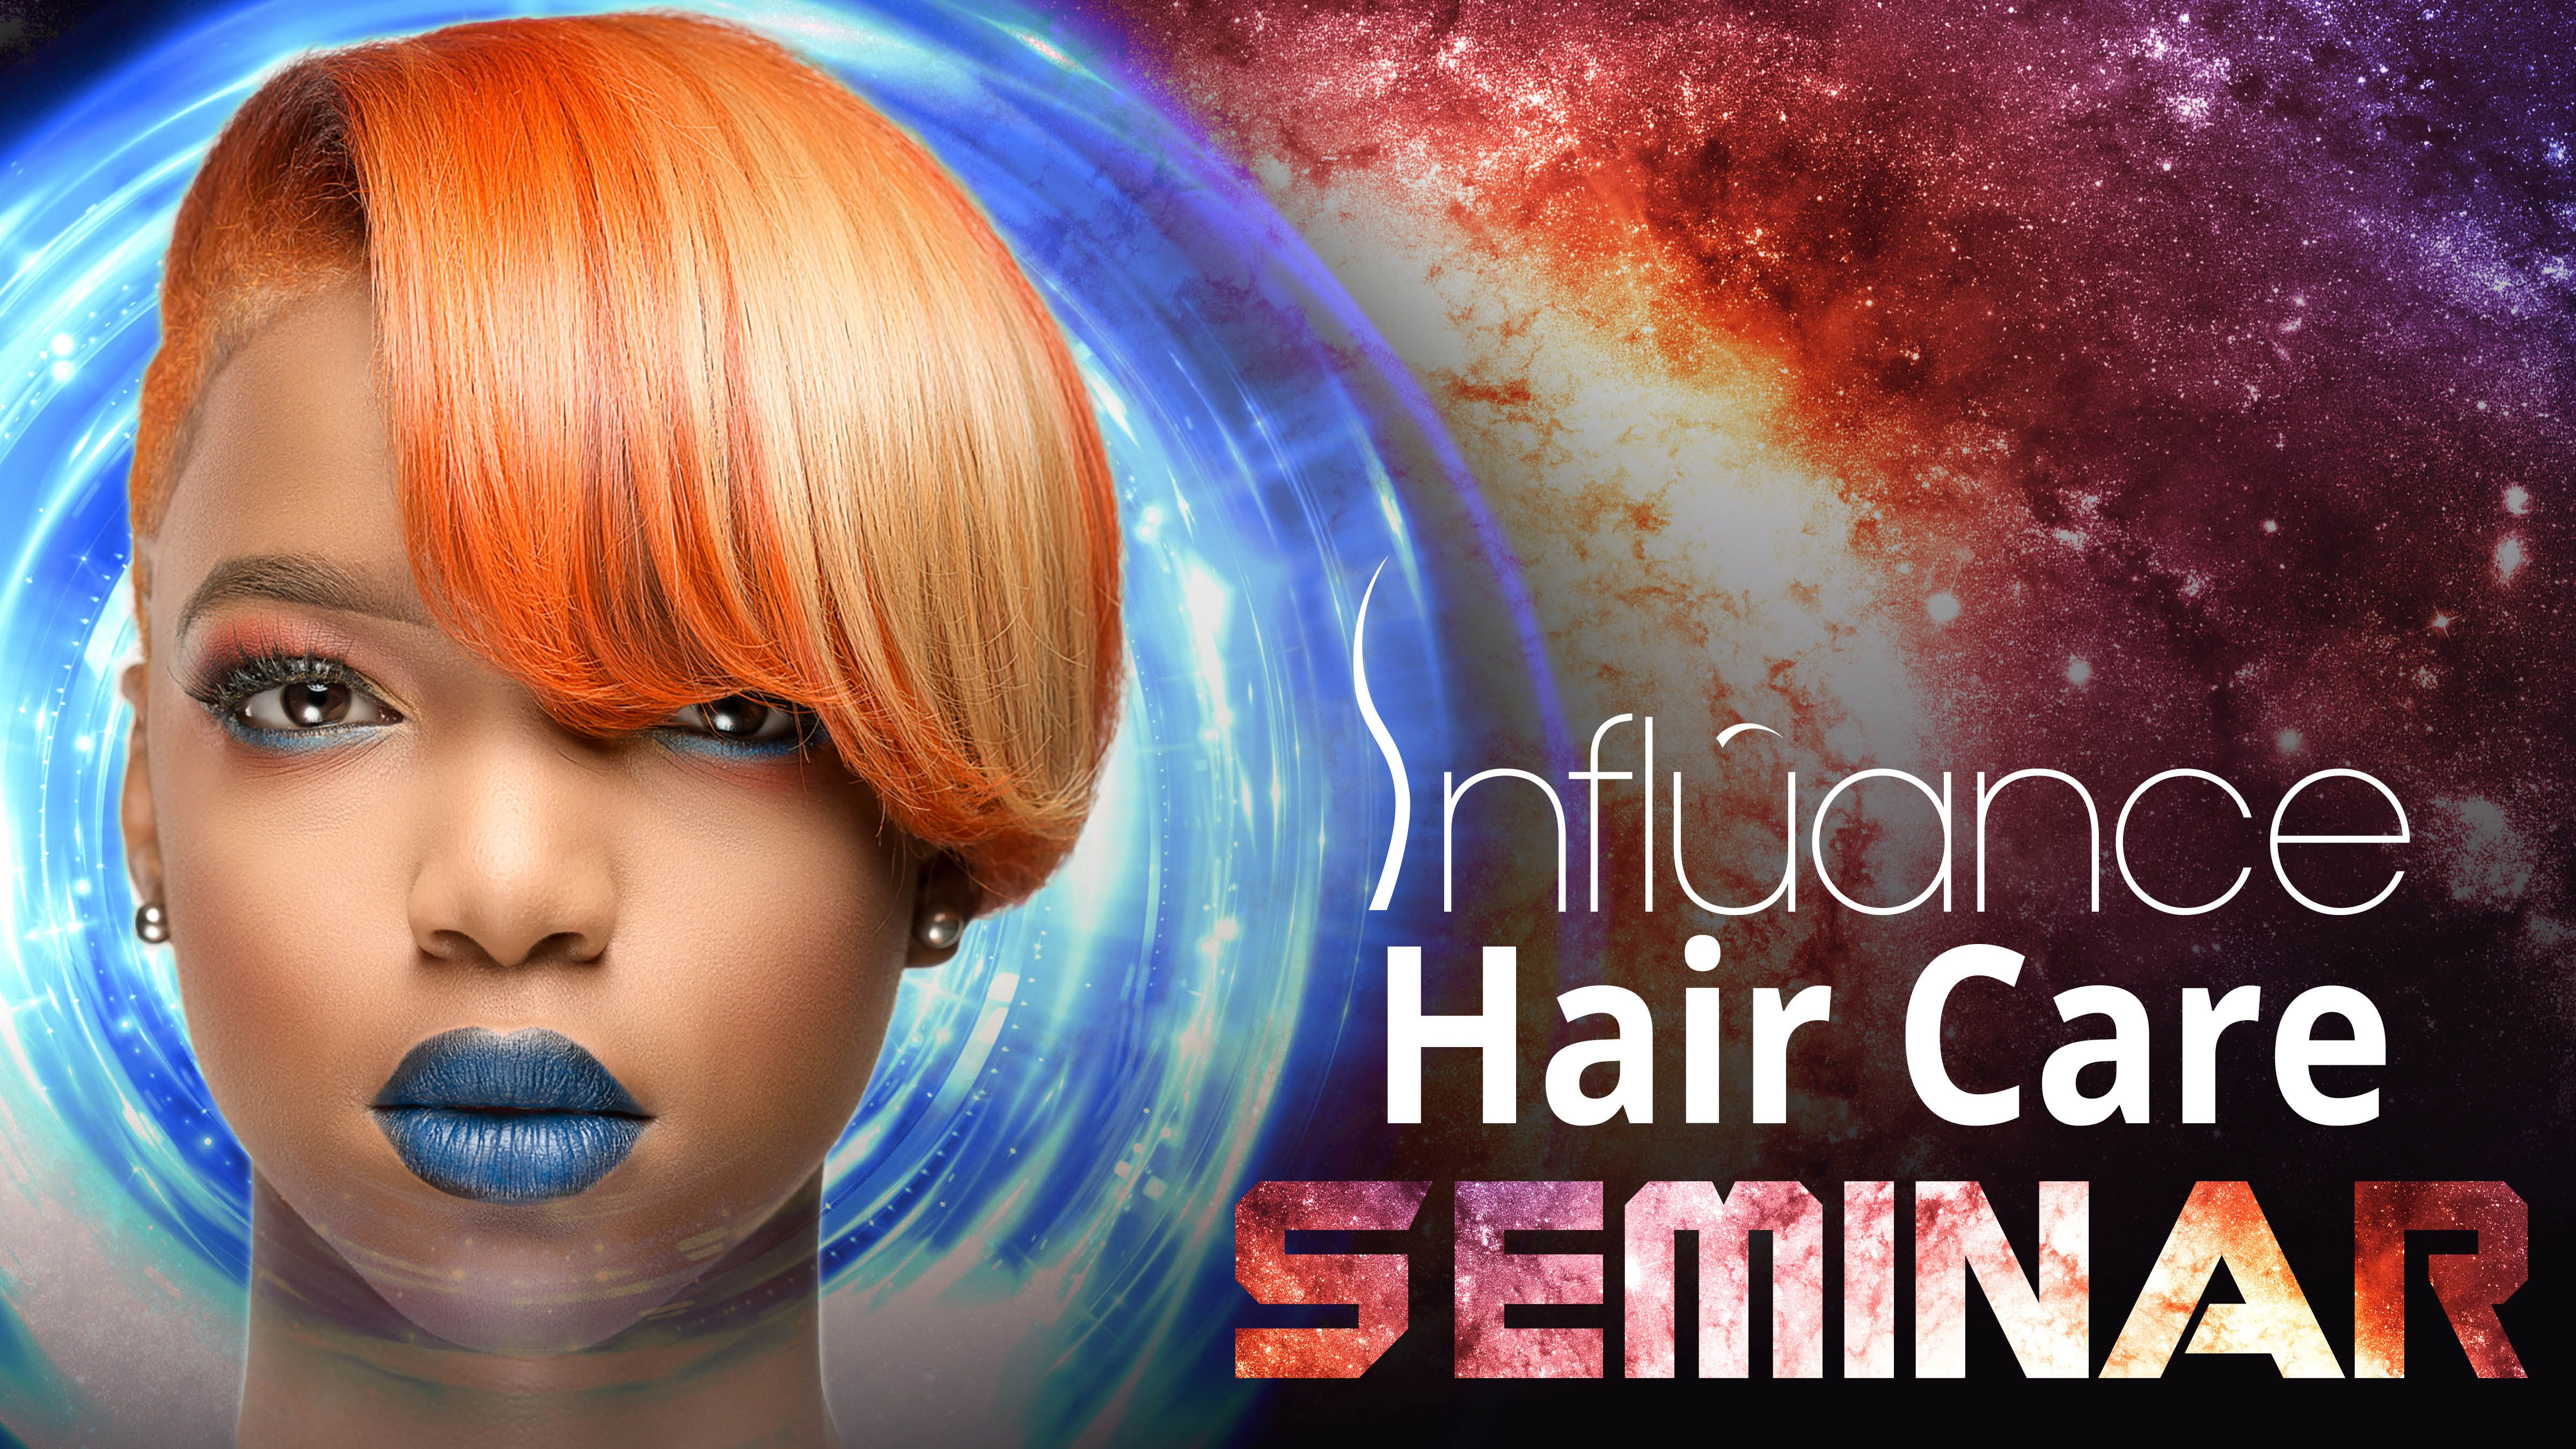 Looking to learn more about Influance Hair Care products